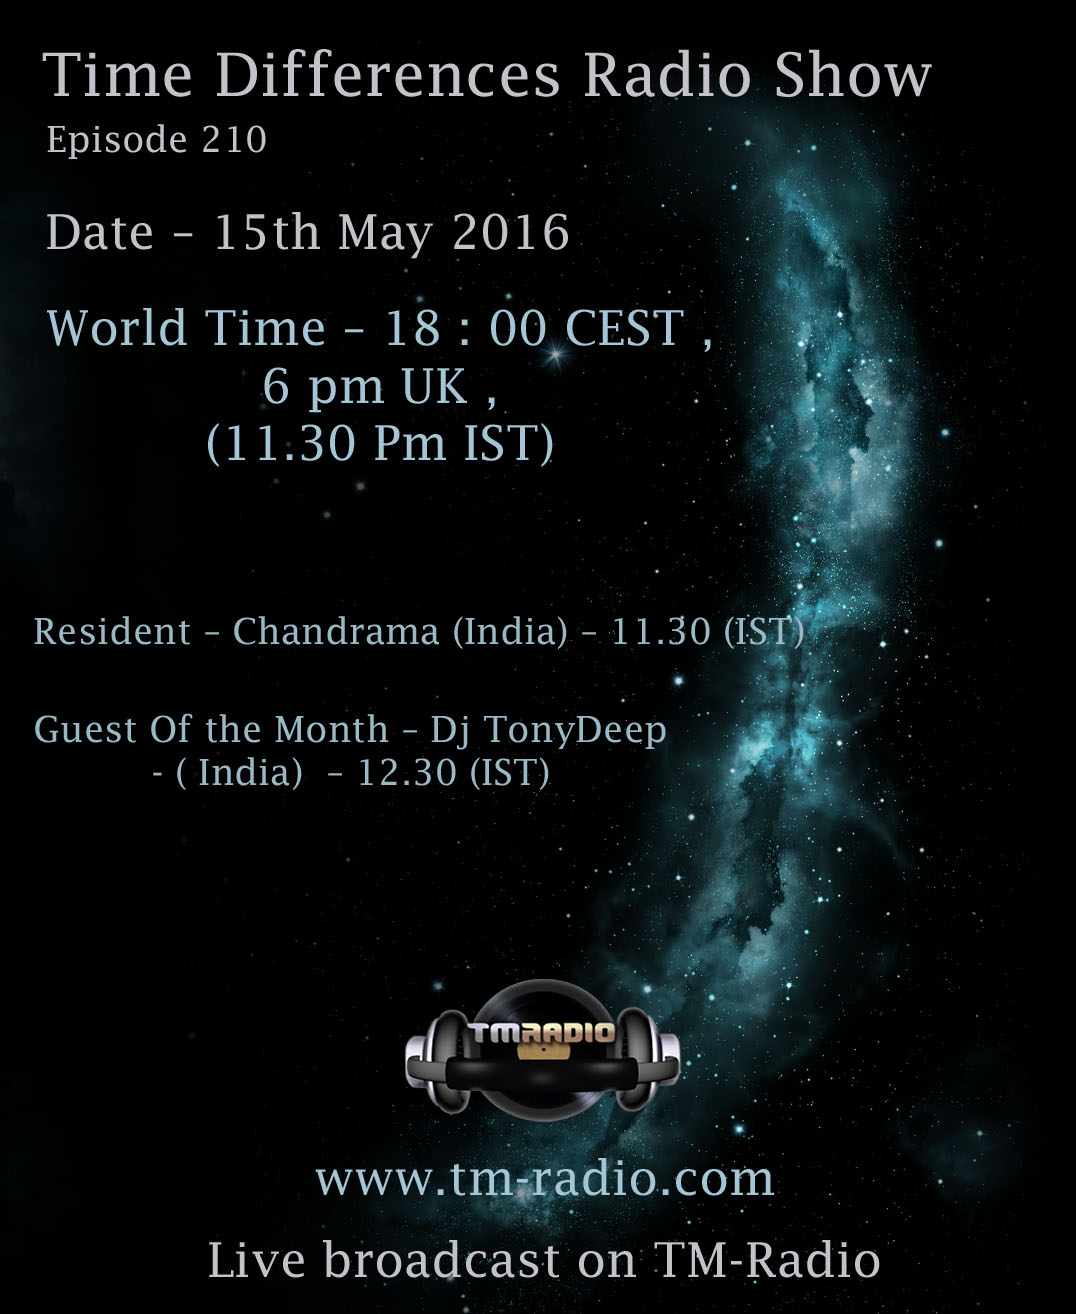 download → Chandrama, TonyDeep - Time Differences 210 on TM Radio - 15-May-2016